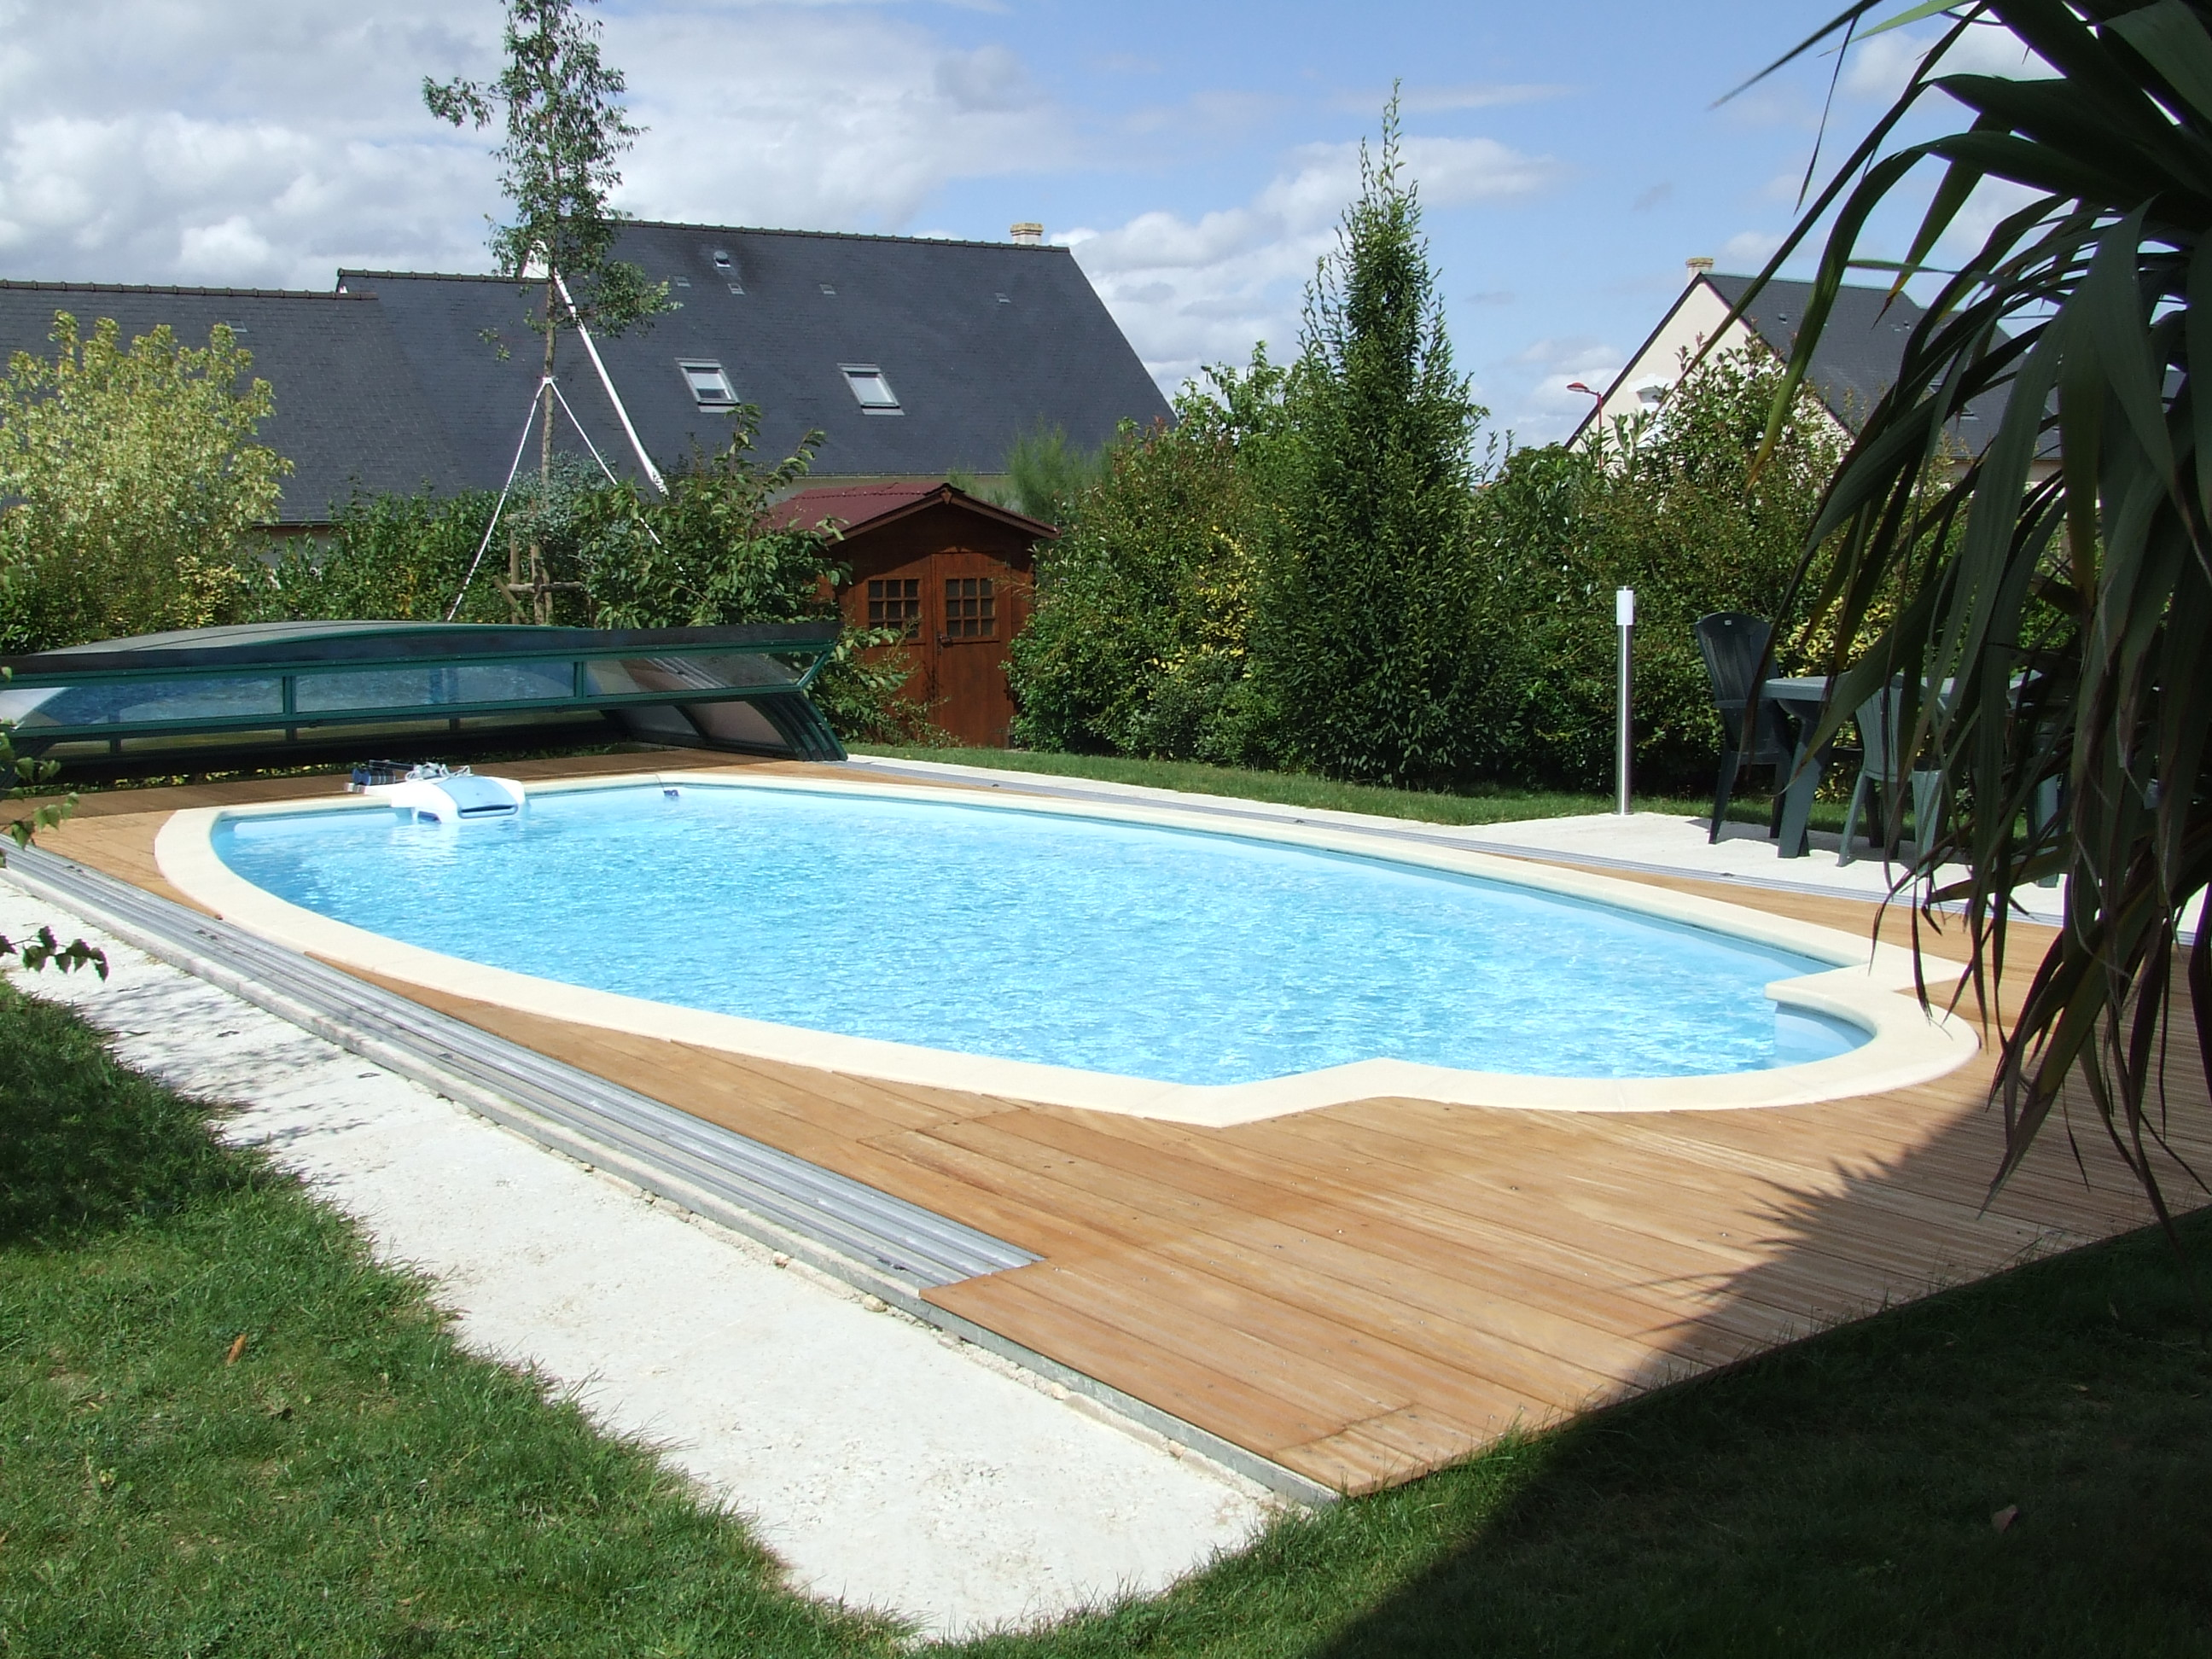 Terrasse bois piscine desjoyaux diverses for Conception de piscine